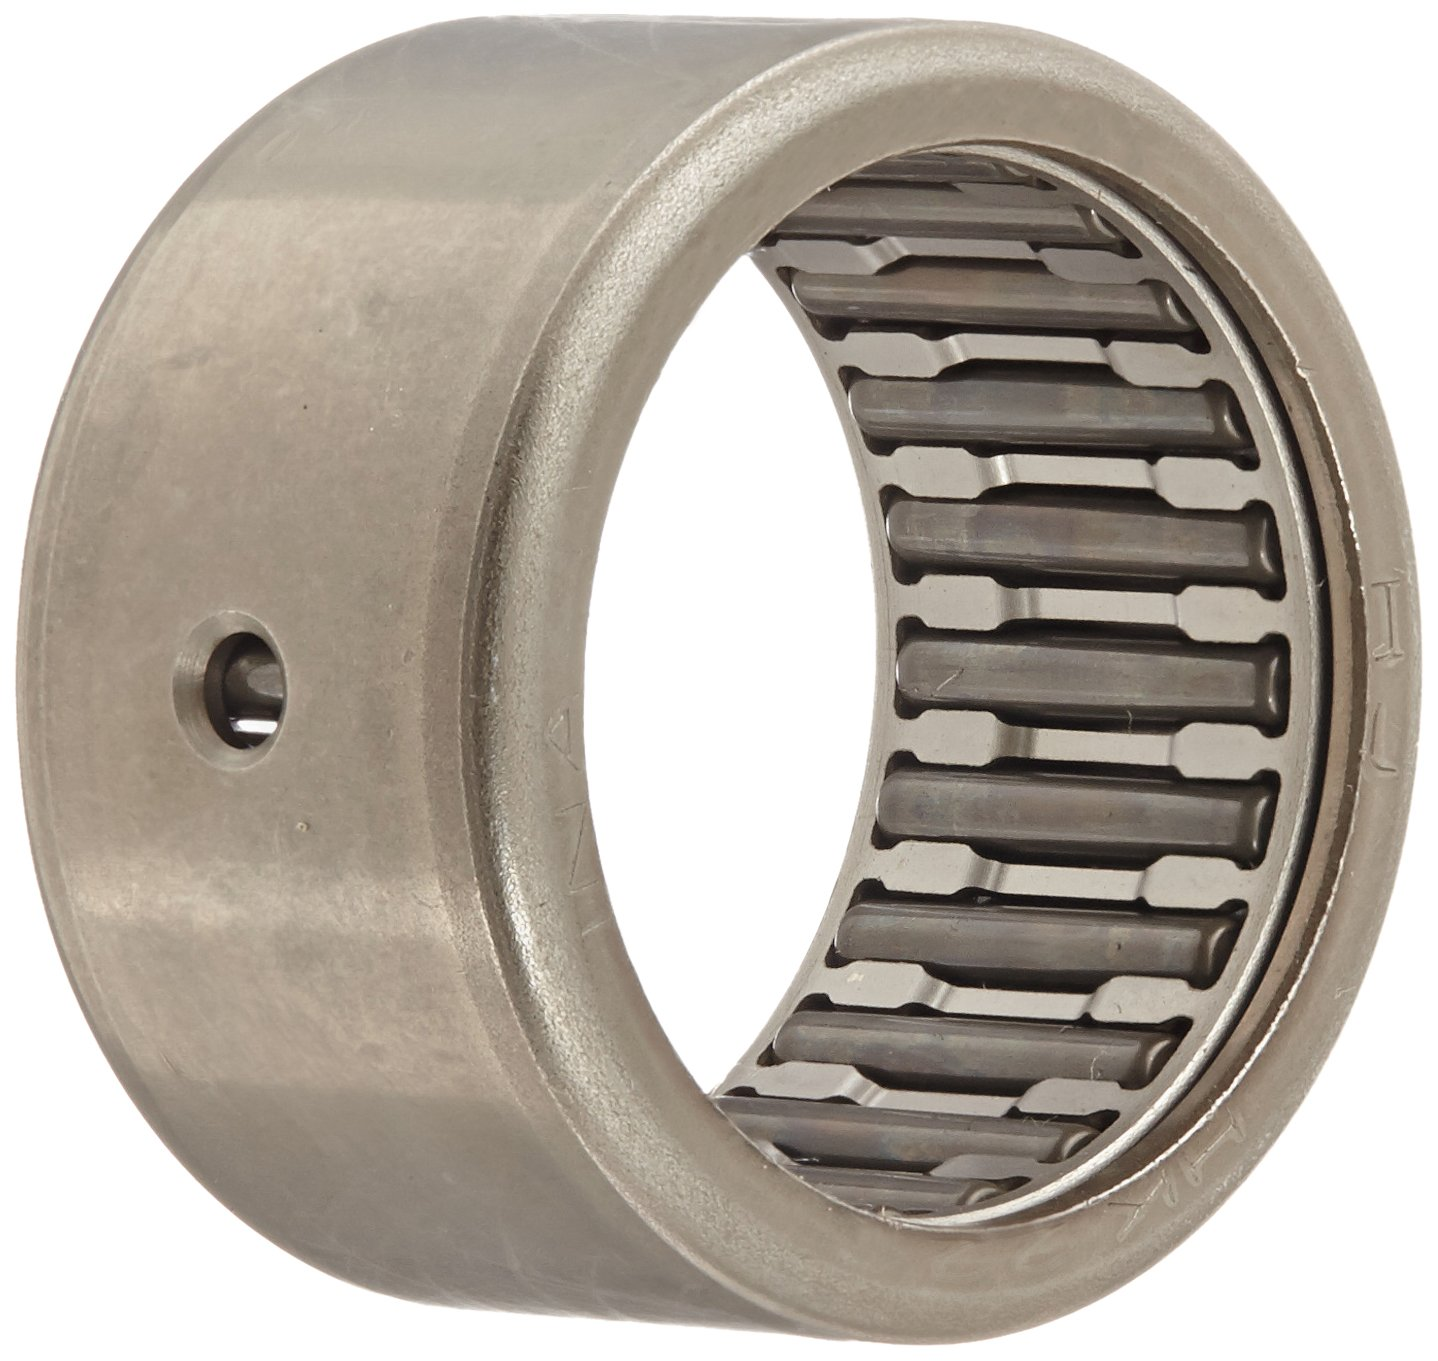 Outer Ring and Roller 28mm ID INA HK2816 Needle Roller Bearing Metric Open End 16mm Width 35mm OD Steel Cage Caged Drawn Cup 9000rpm Maximum Rotational Speed